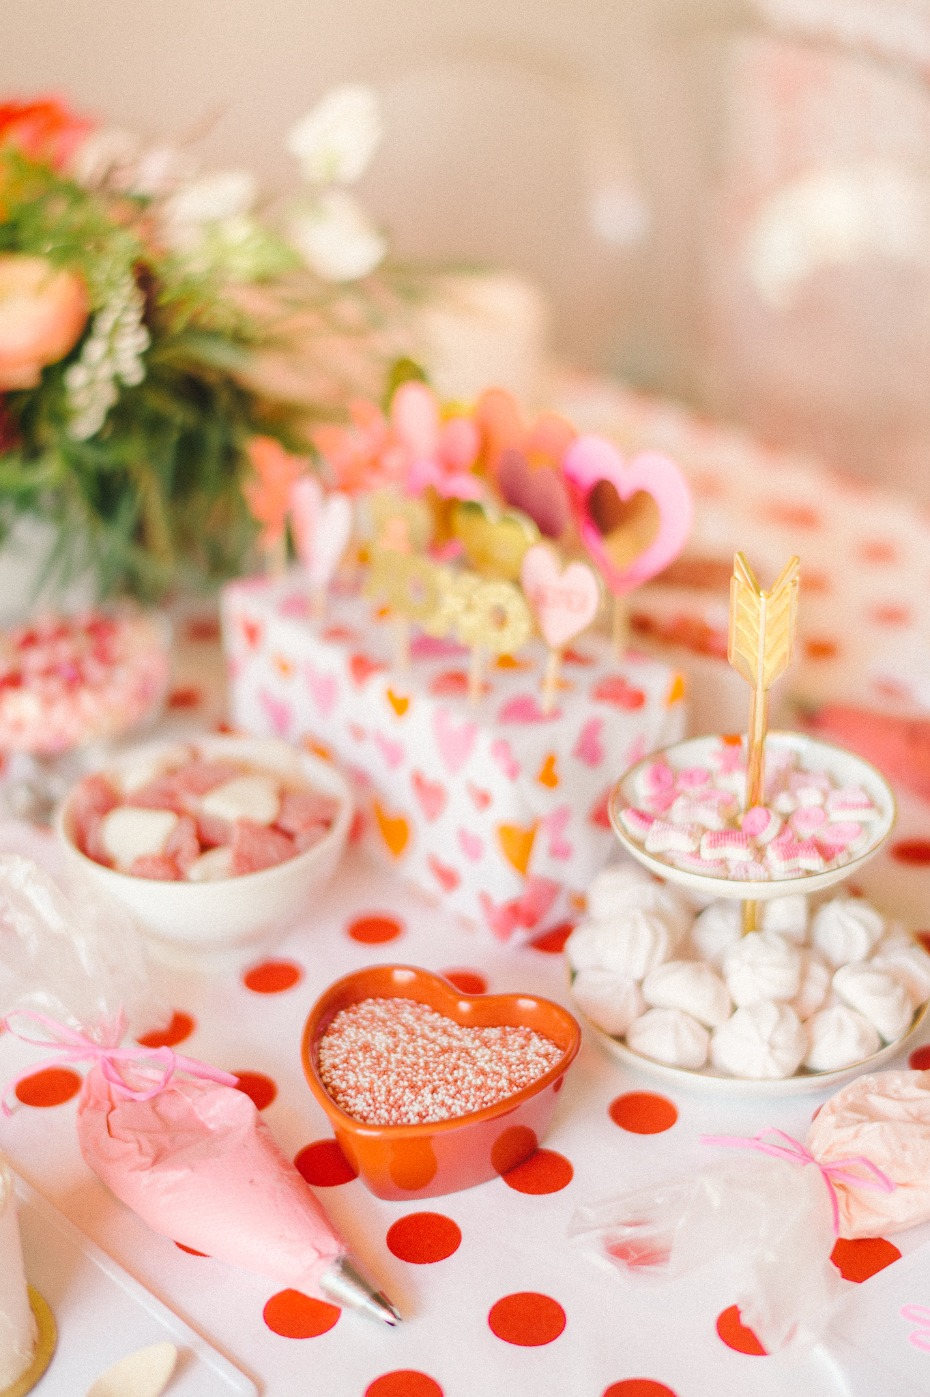 candy and sweets cake decoration table